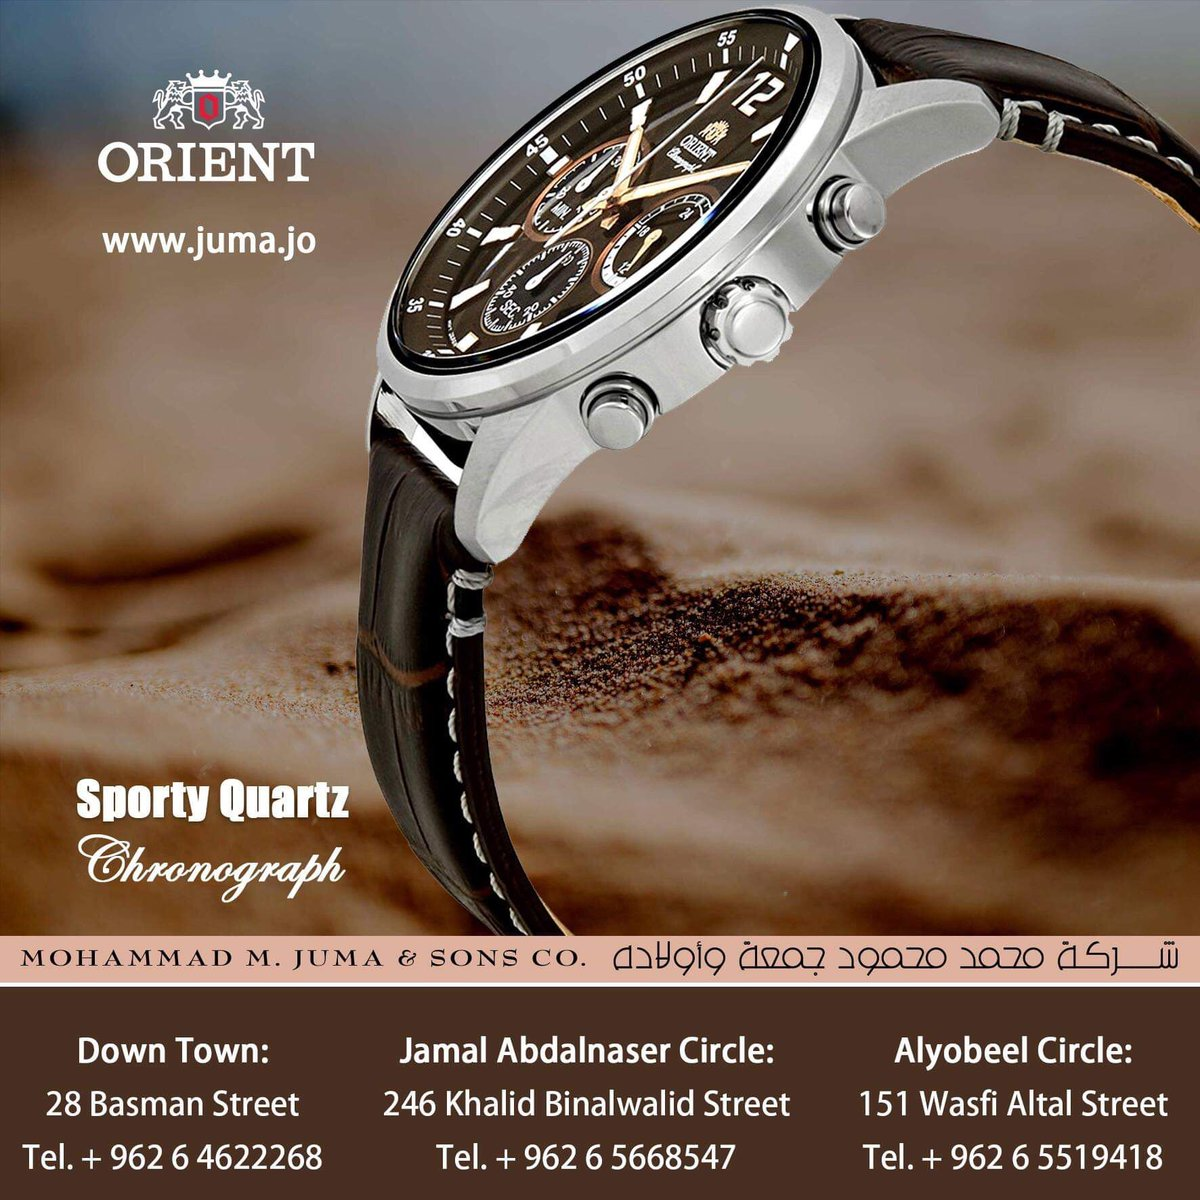 234eb2f52 ... sporty quartz watch... #orientwatch #orientwatches #wristwatch  #CHRONOGRAPH #SPORT #QUARTZ #luxury #fashion #watch #watches #orient  #online #juma ...